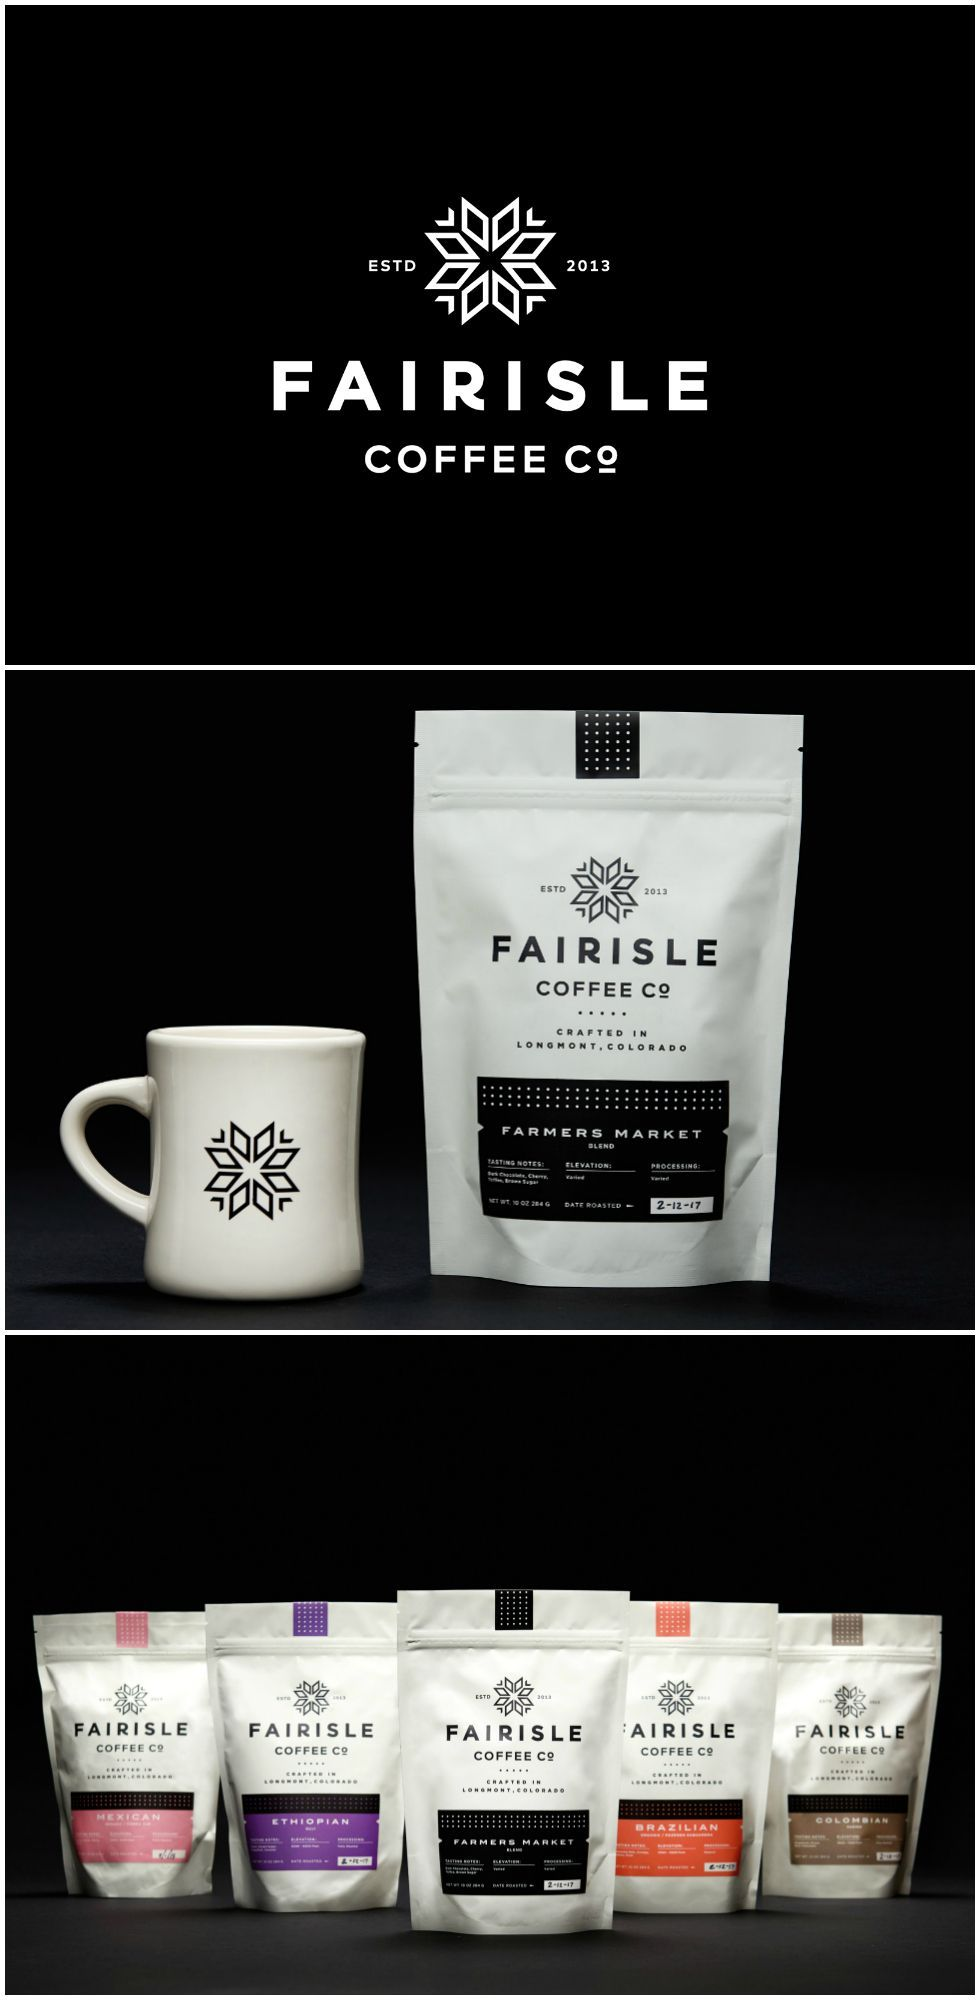 Visual Identity And Packaging Design System Created For Coffee Brand In Colorado Usa Design Agency Steve W Coffee Bag Design Coffee Branding Coffee Packaging